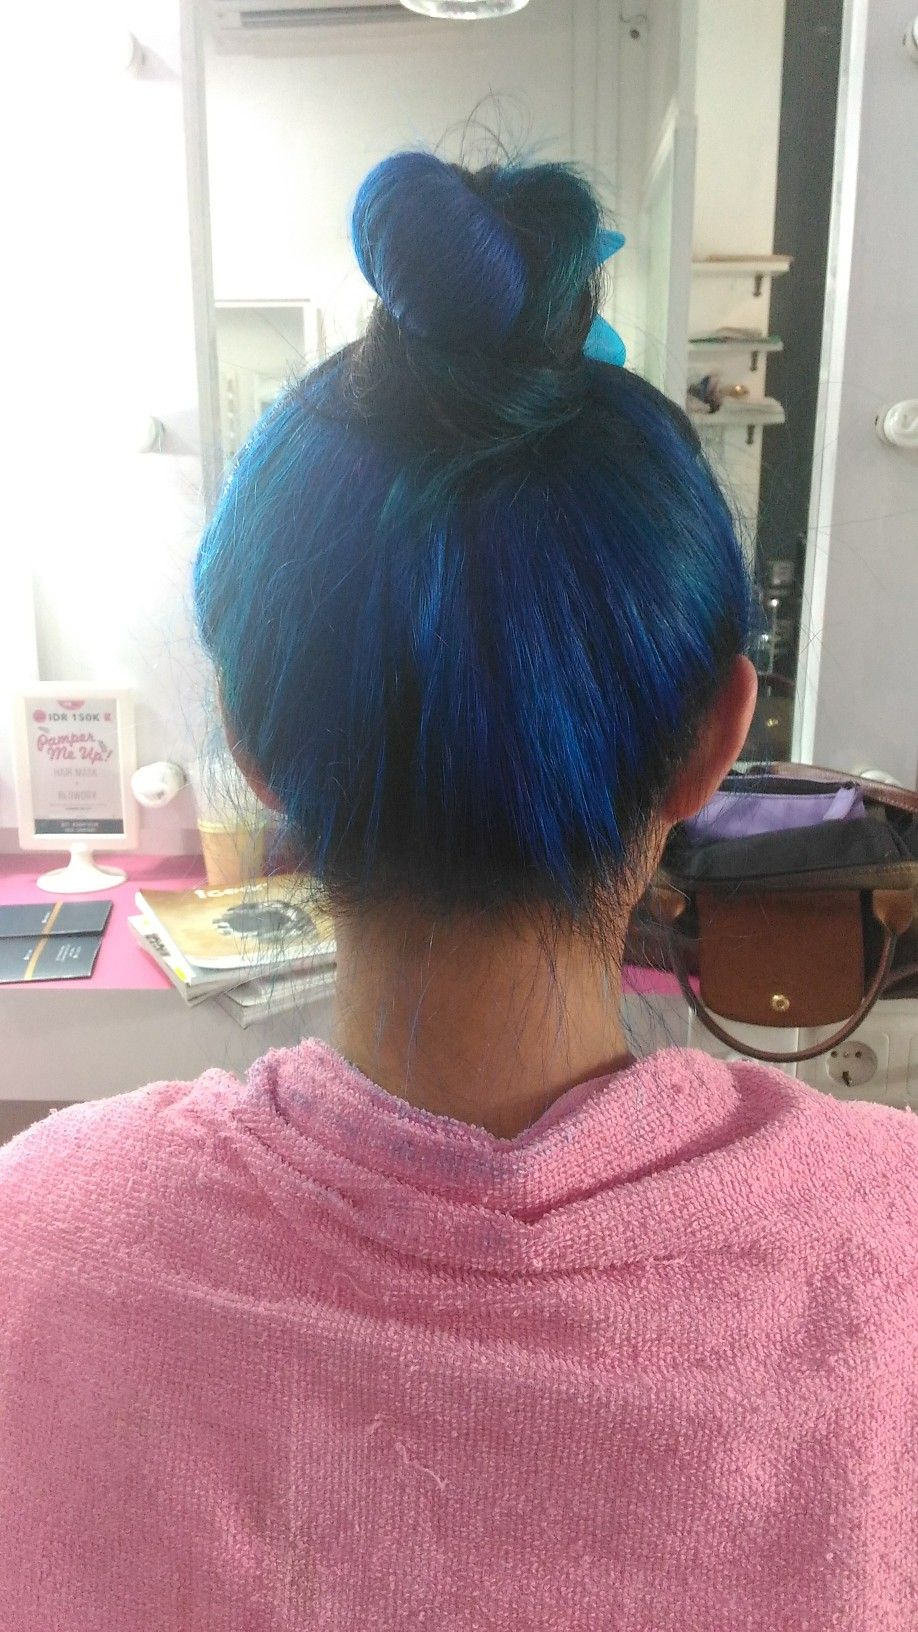 Pin by veronica arroyo on cab pinterest hair coloring dye hair